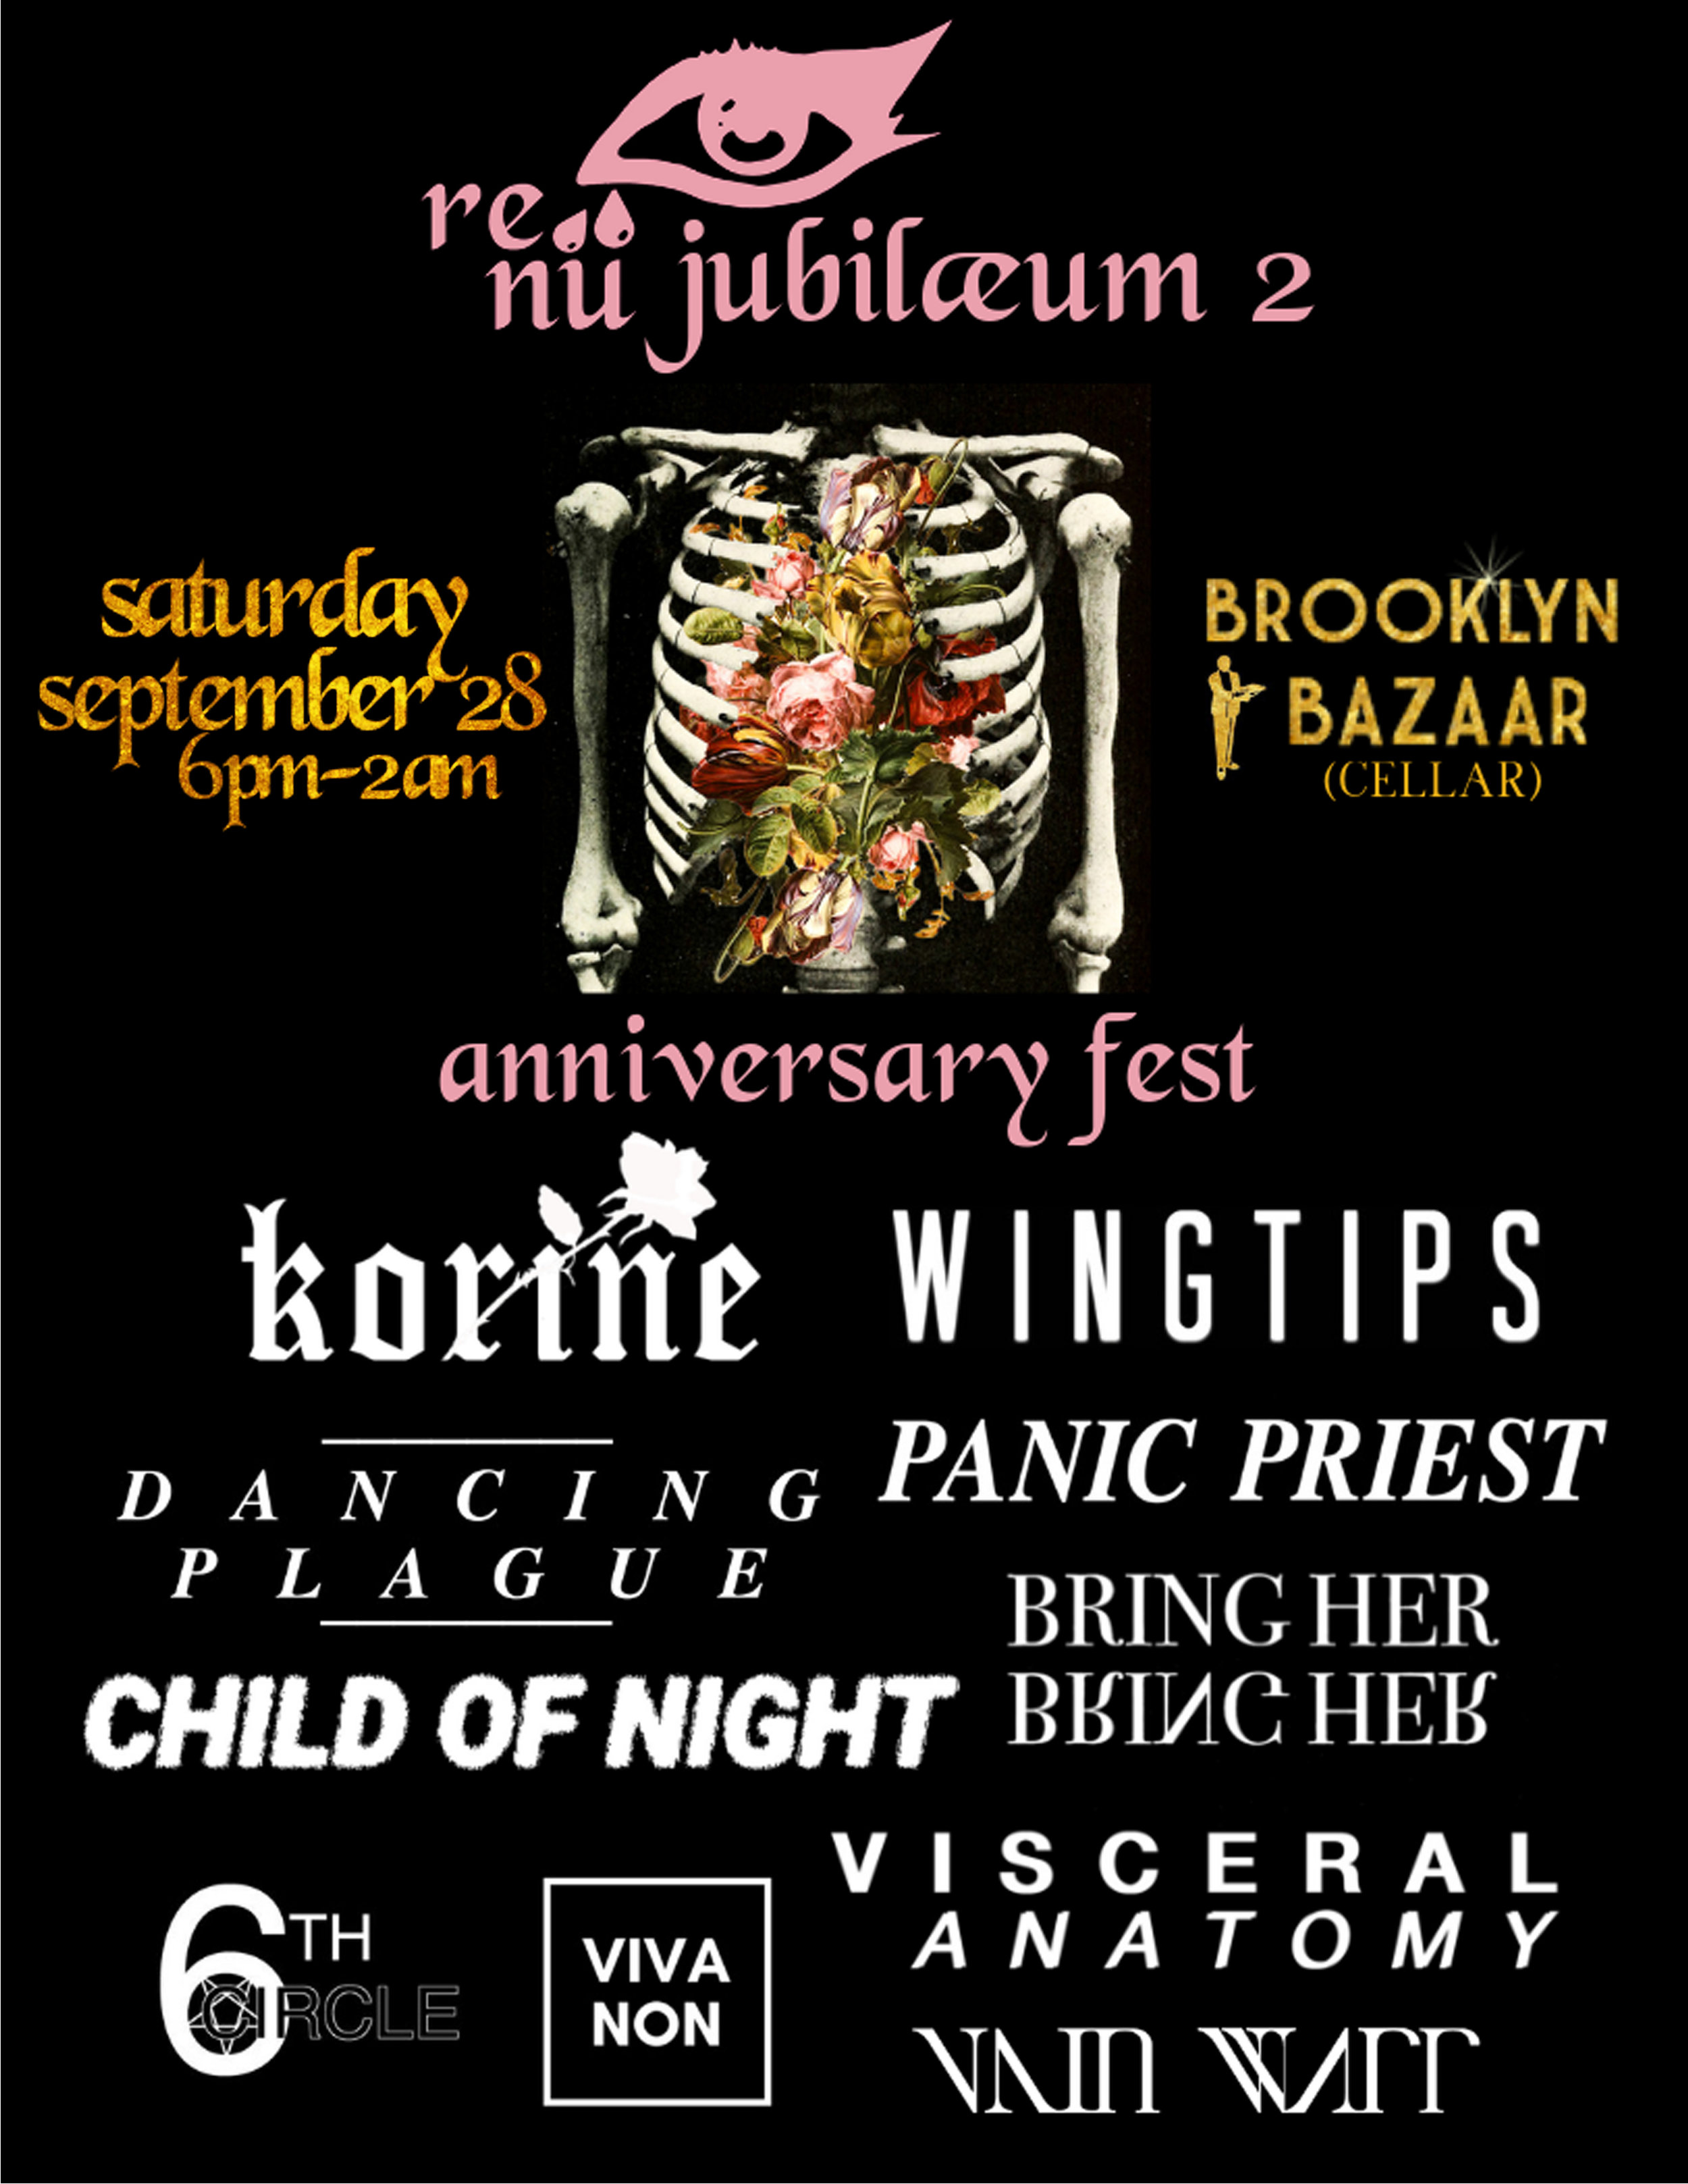 Flyer for Re:Nu's 2nd Anniversary Fest